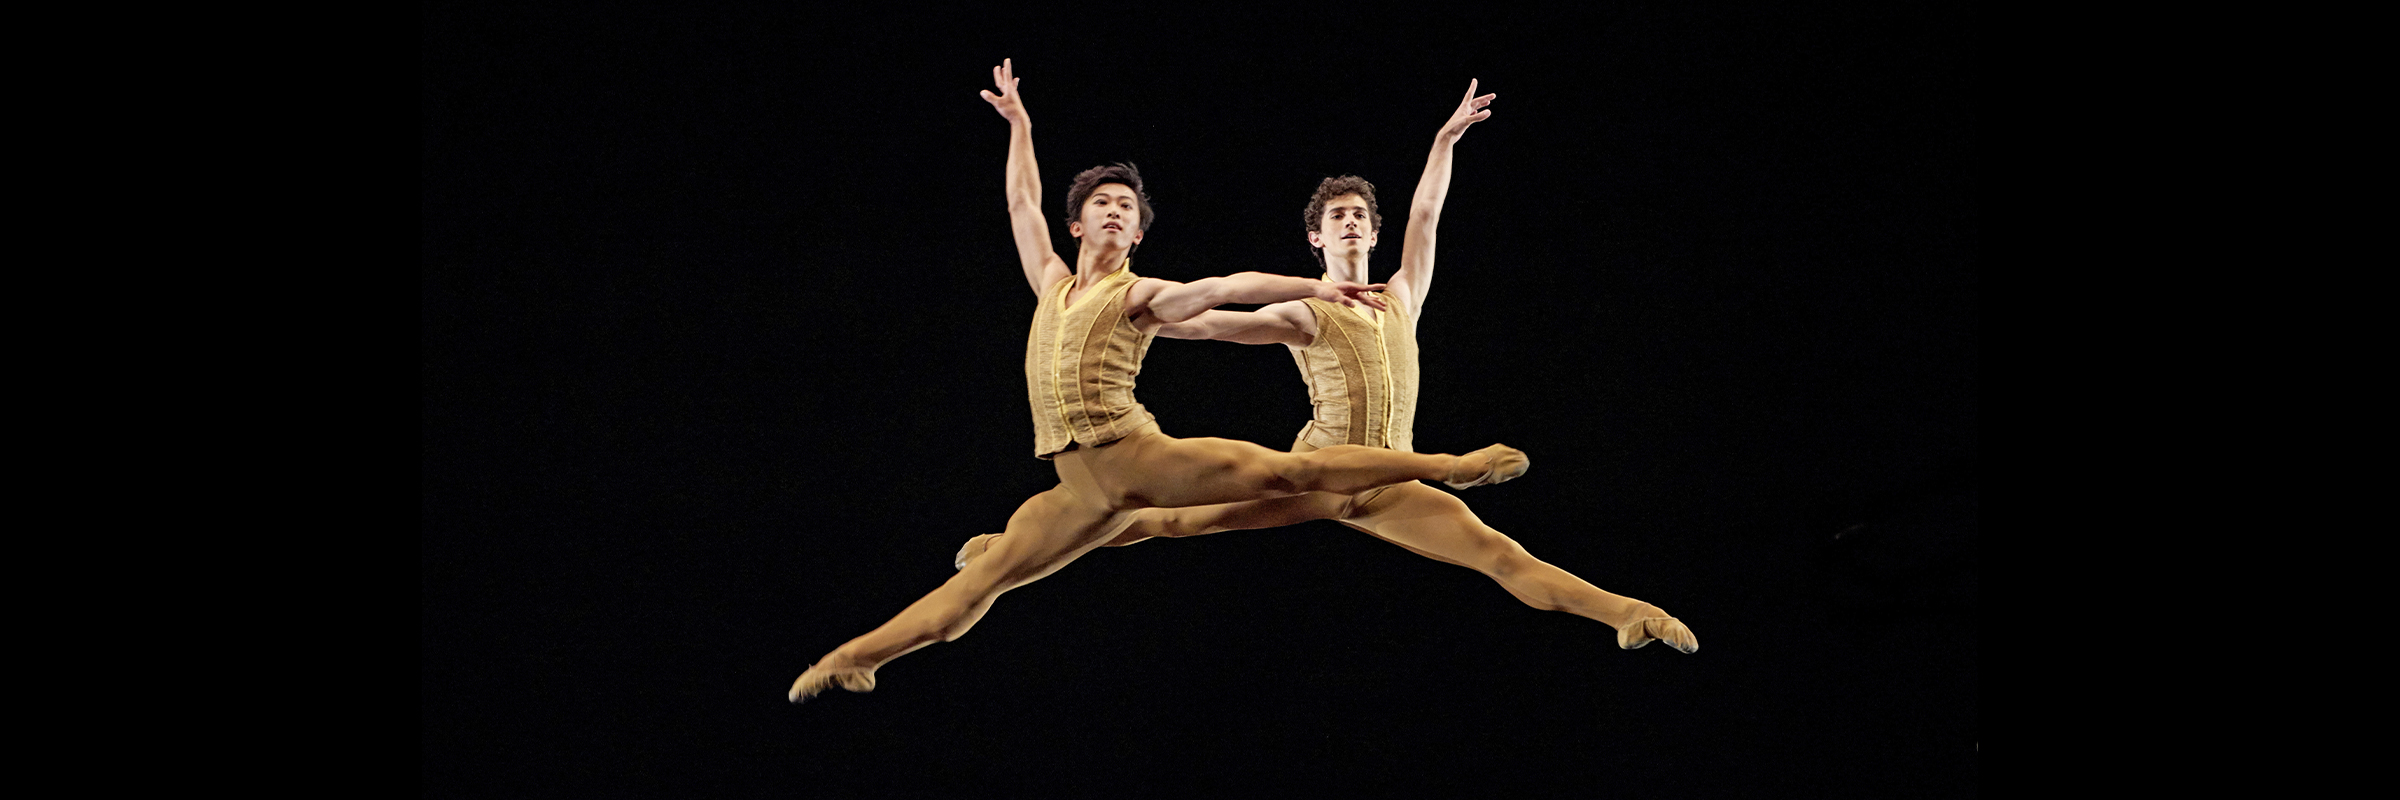 Wei Wang and Max Cauthorn in Tomasson's Caprice // © Erik Tomasson